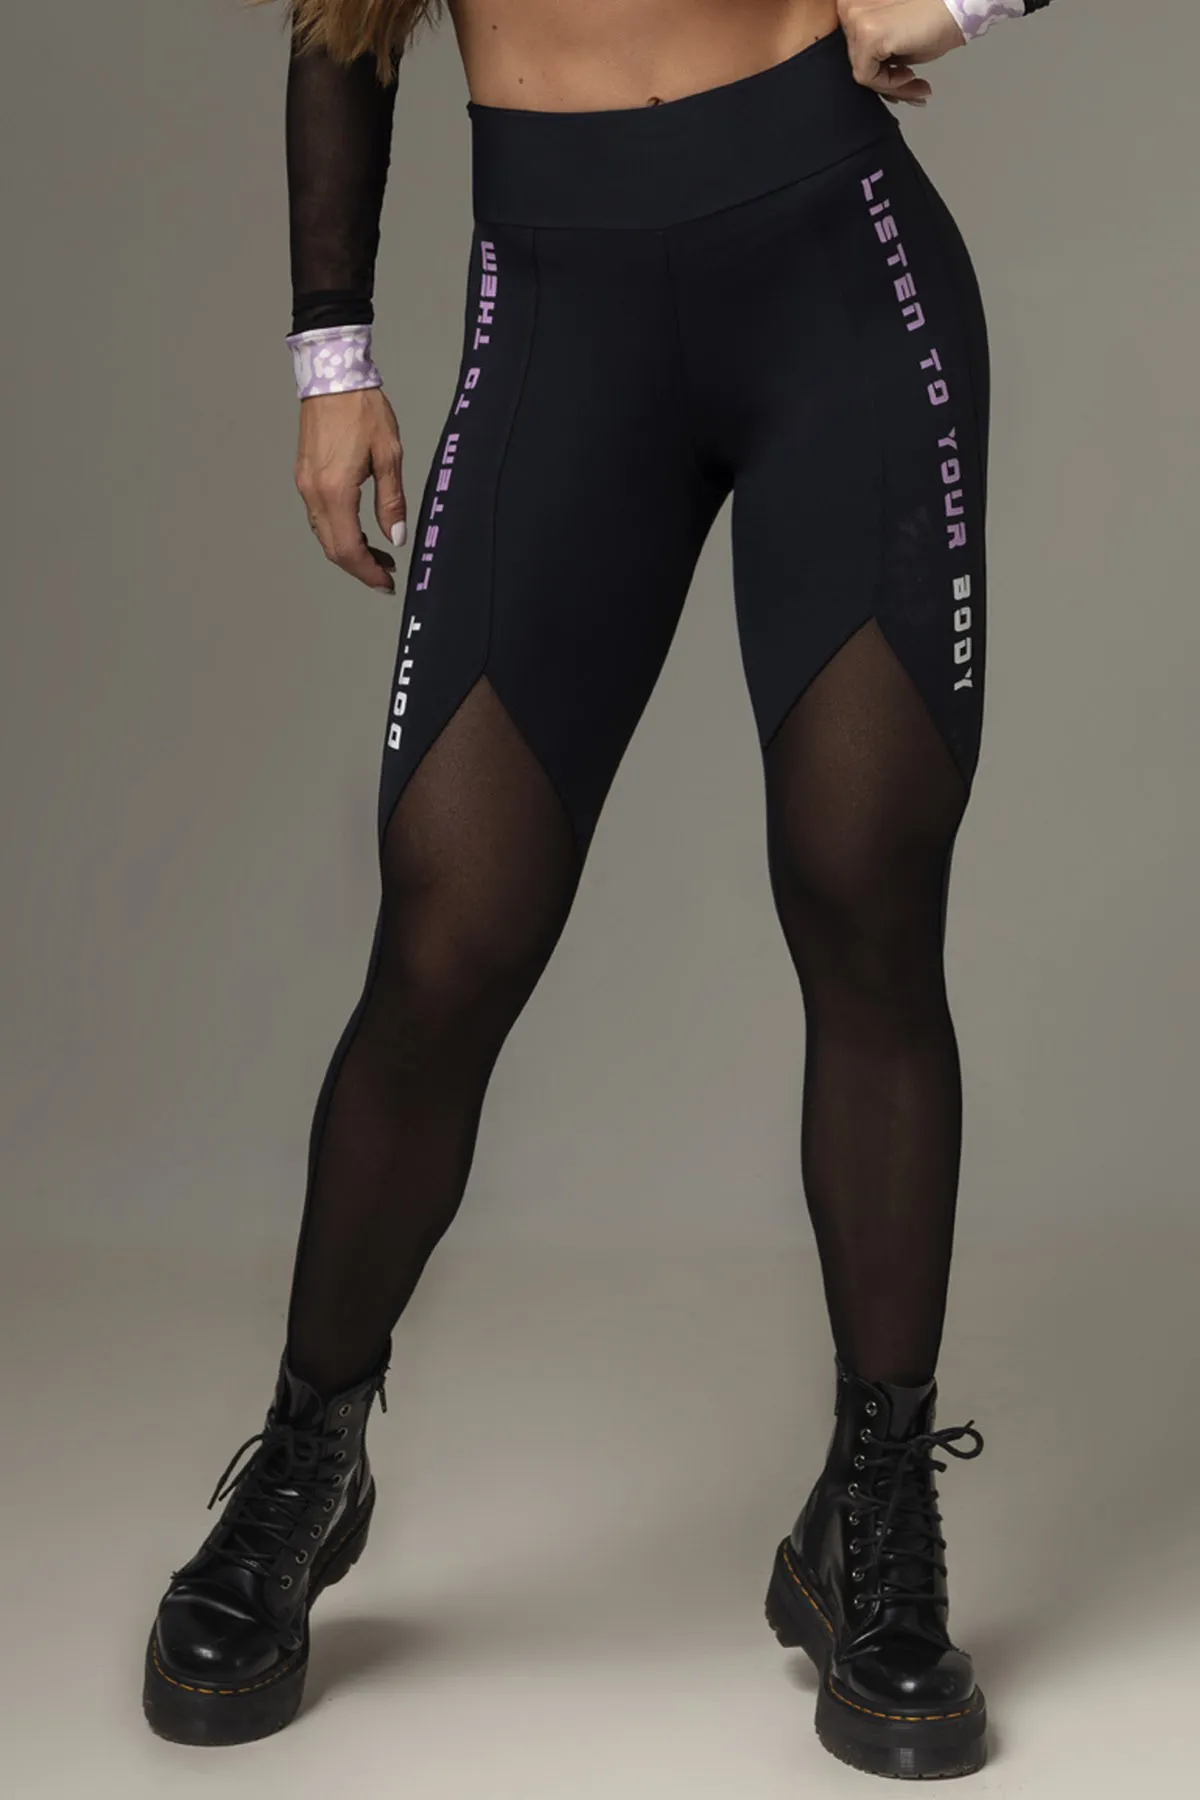 LEGGING ACTION FITNESS PRETA COM TULE HIPKINI